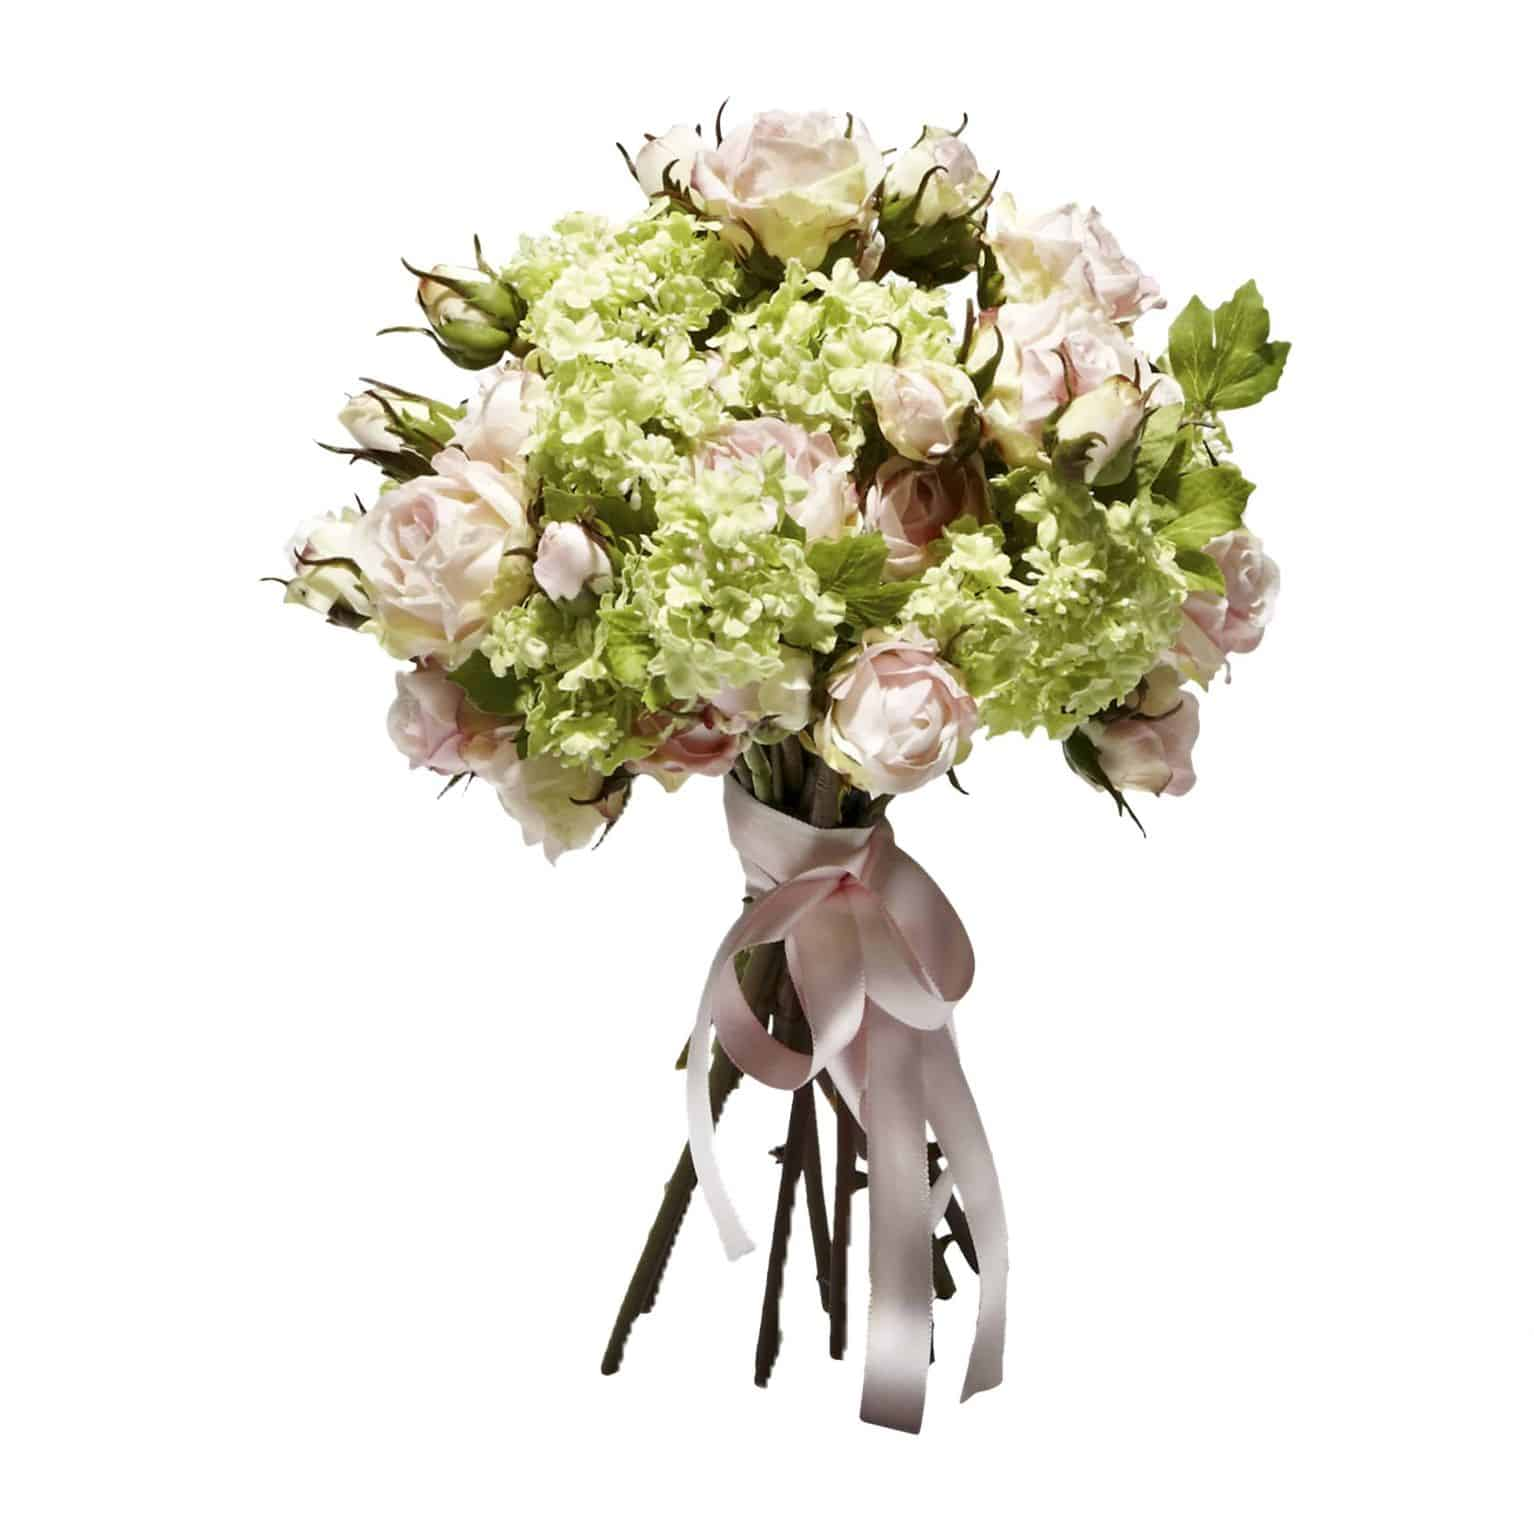 Shop & enjoy the pleasure of this refreshing silk flower bouquet. Handtied blooming silk flower stems of fine pink roses and green guelder faux flowers.